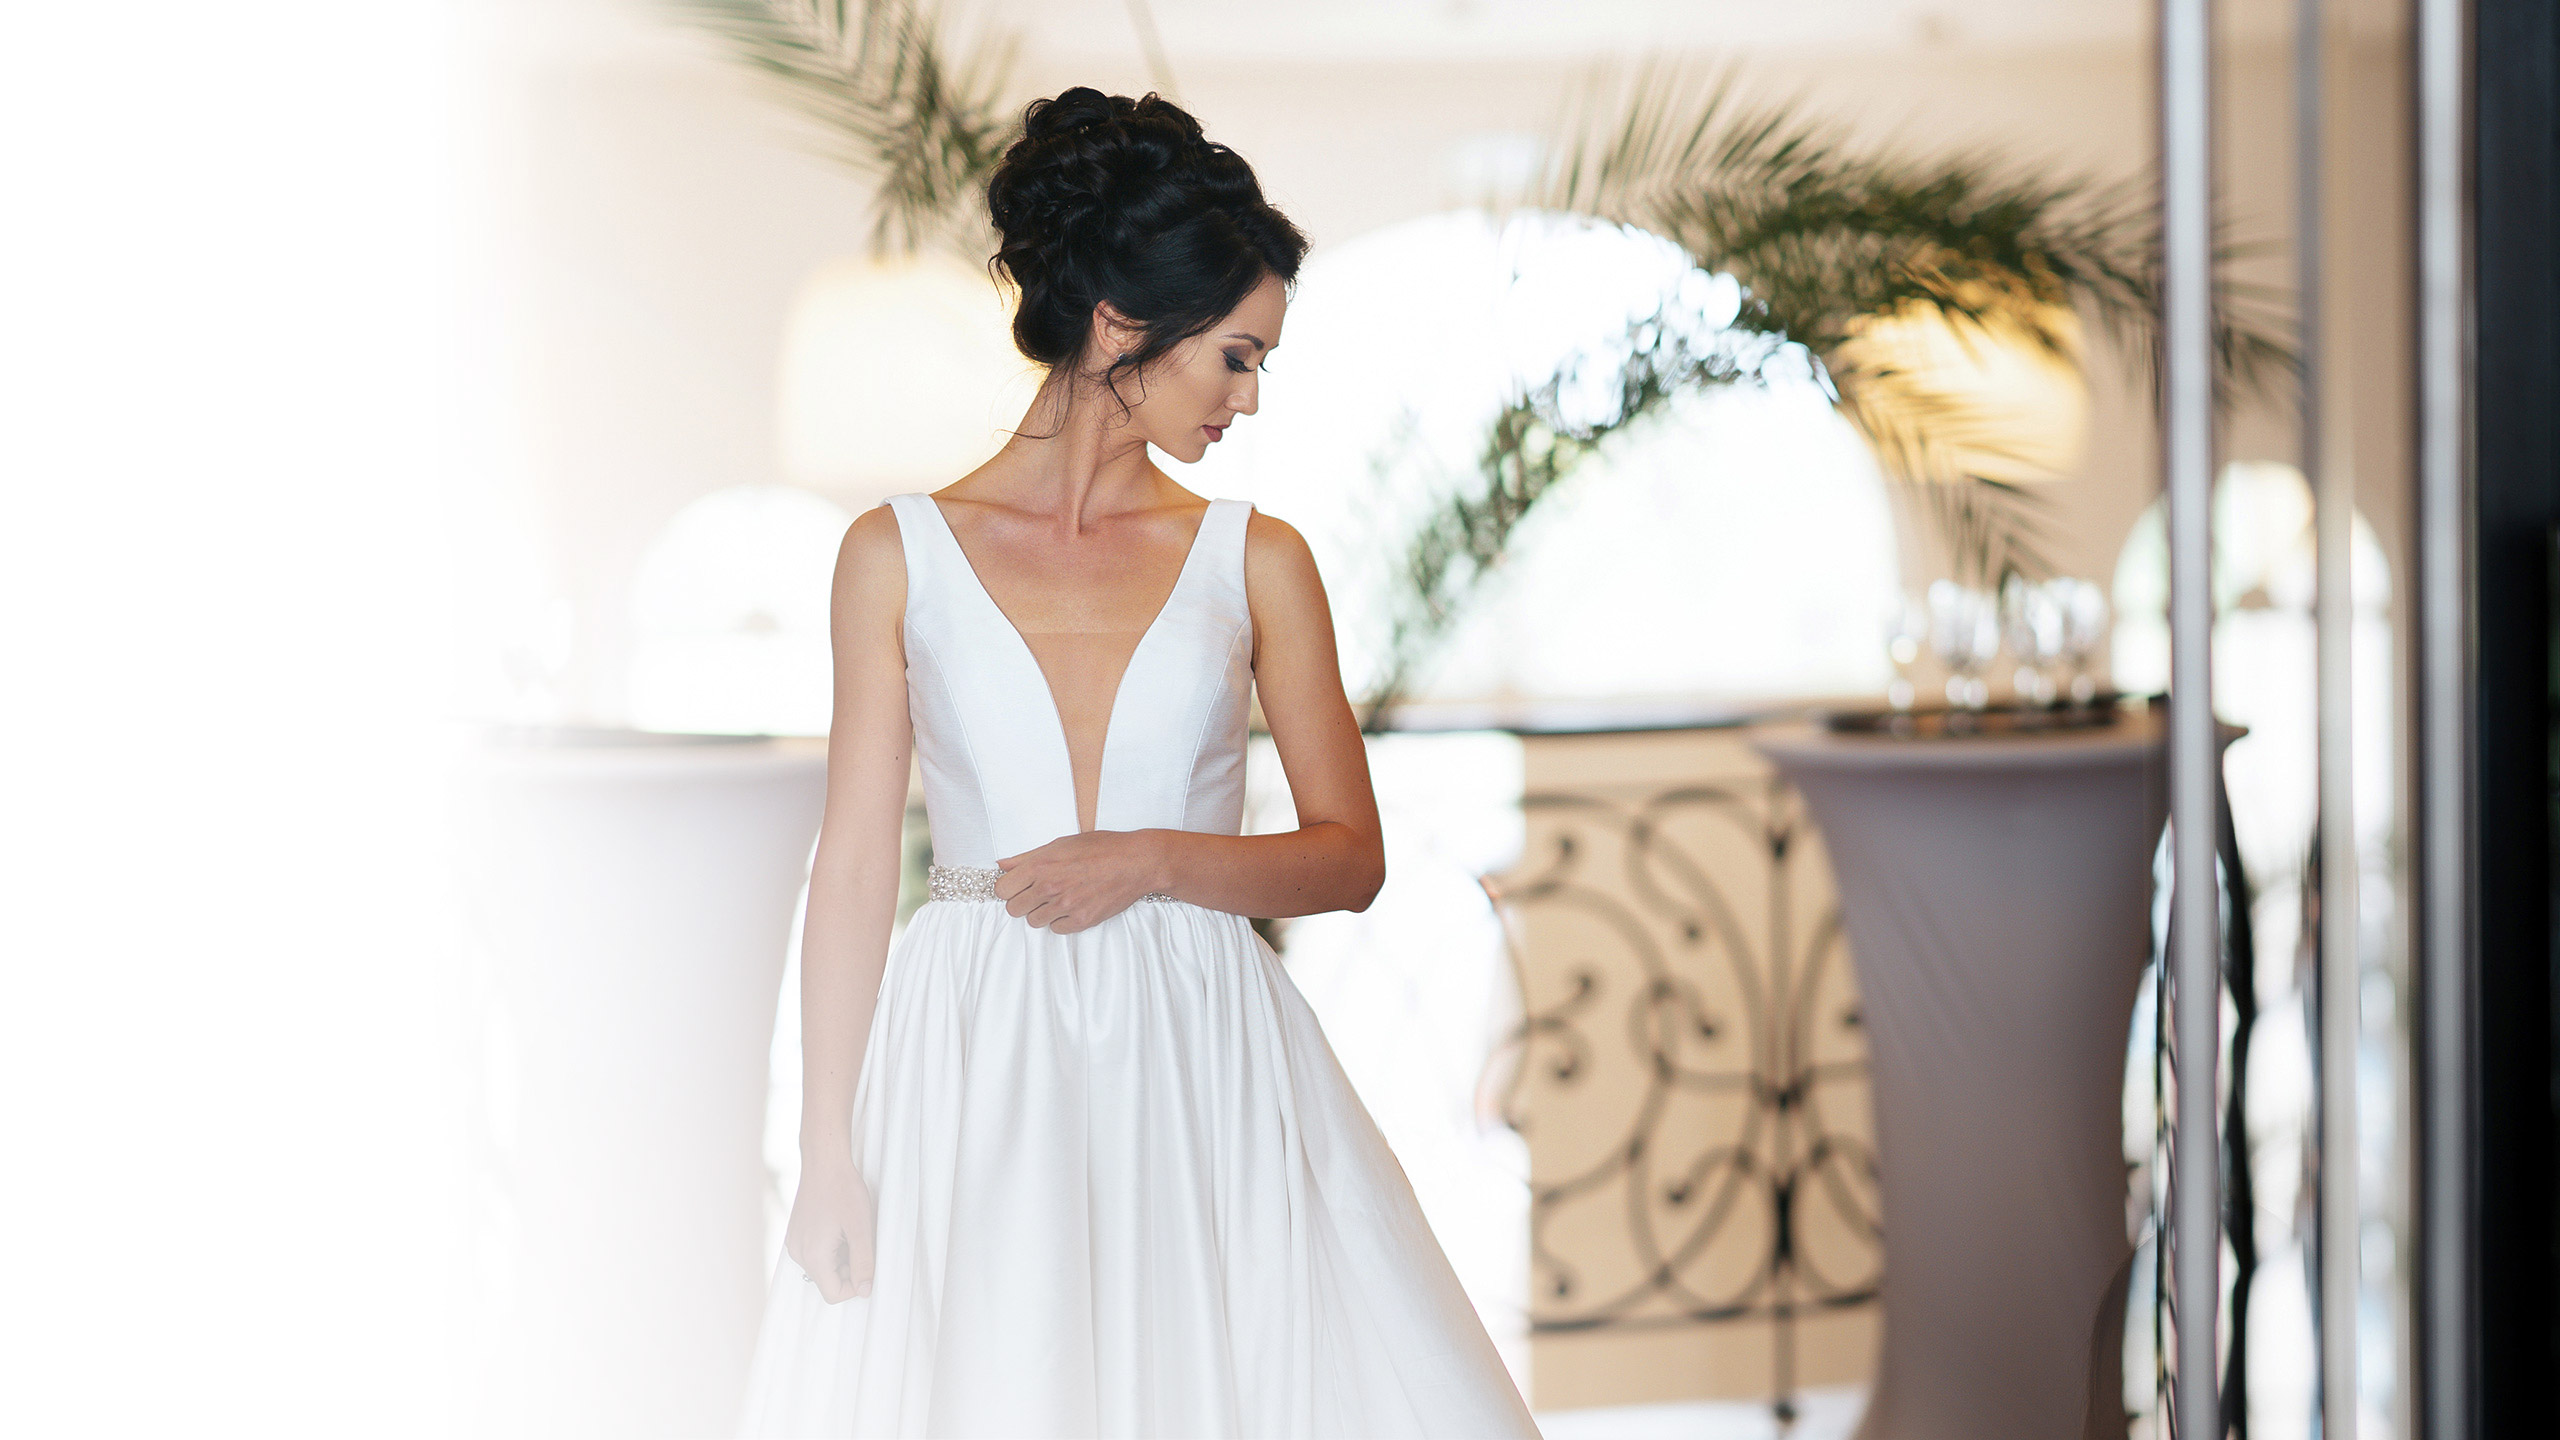 Bridal dresses and accesories